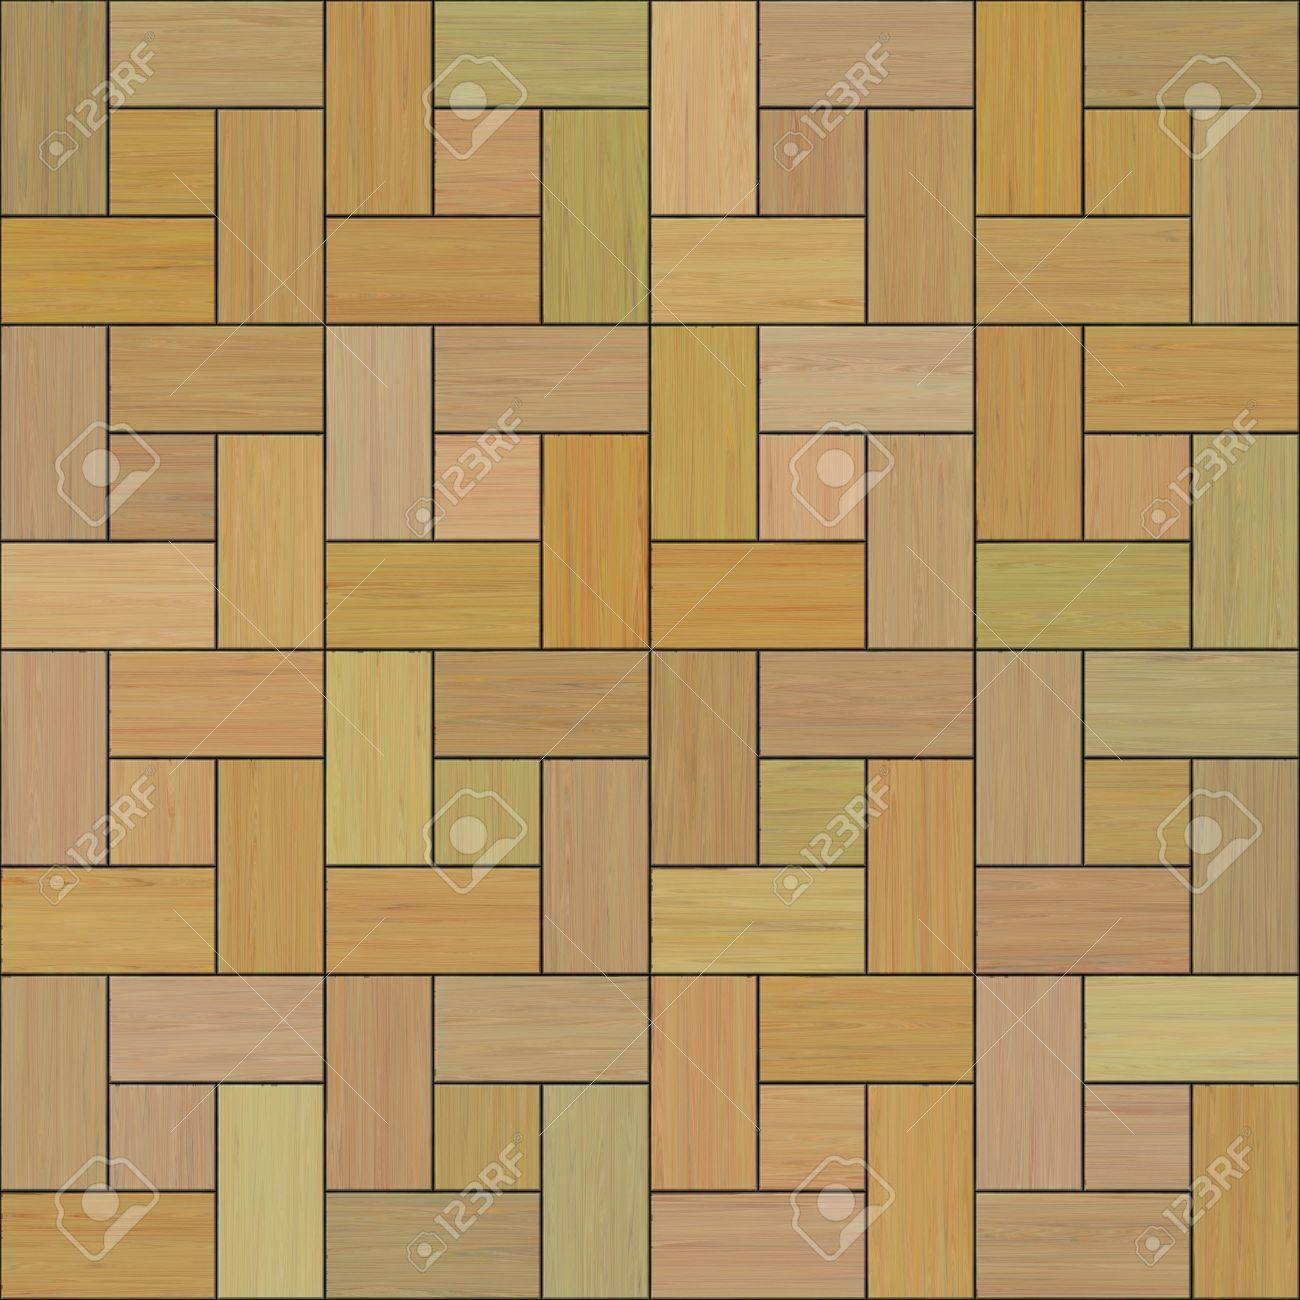 Seamless High Quality High Resolution Wooden Floor Tiles Stock Photo